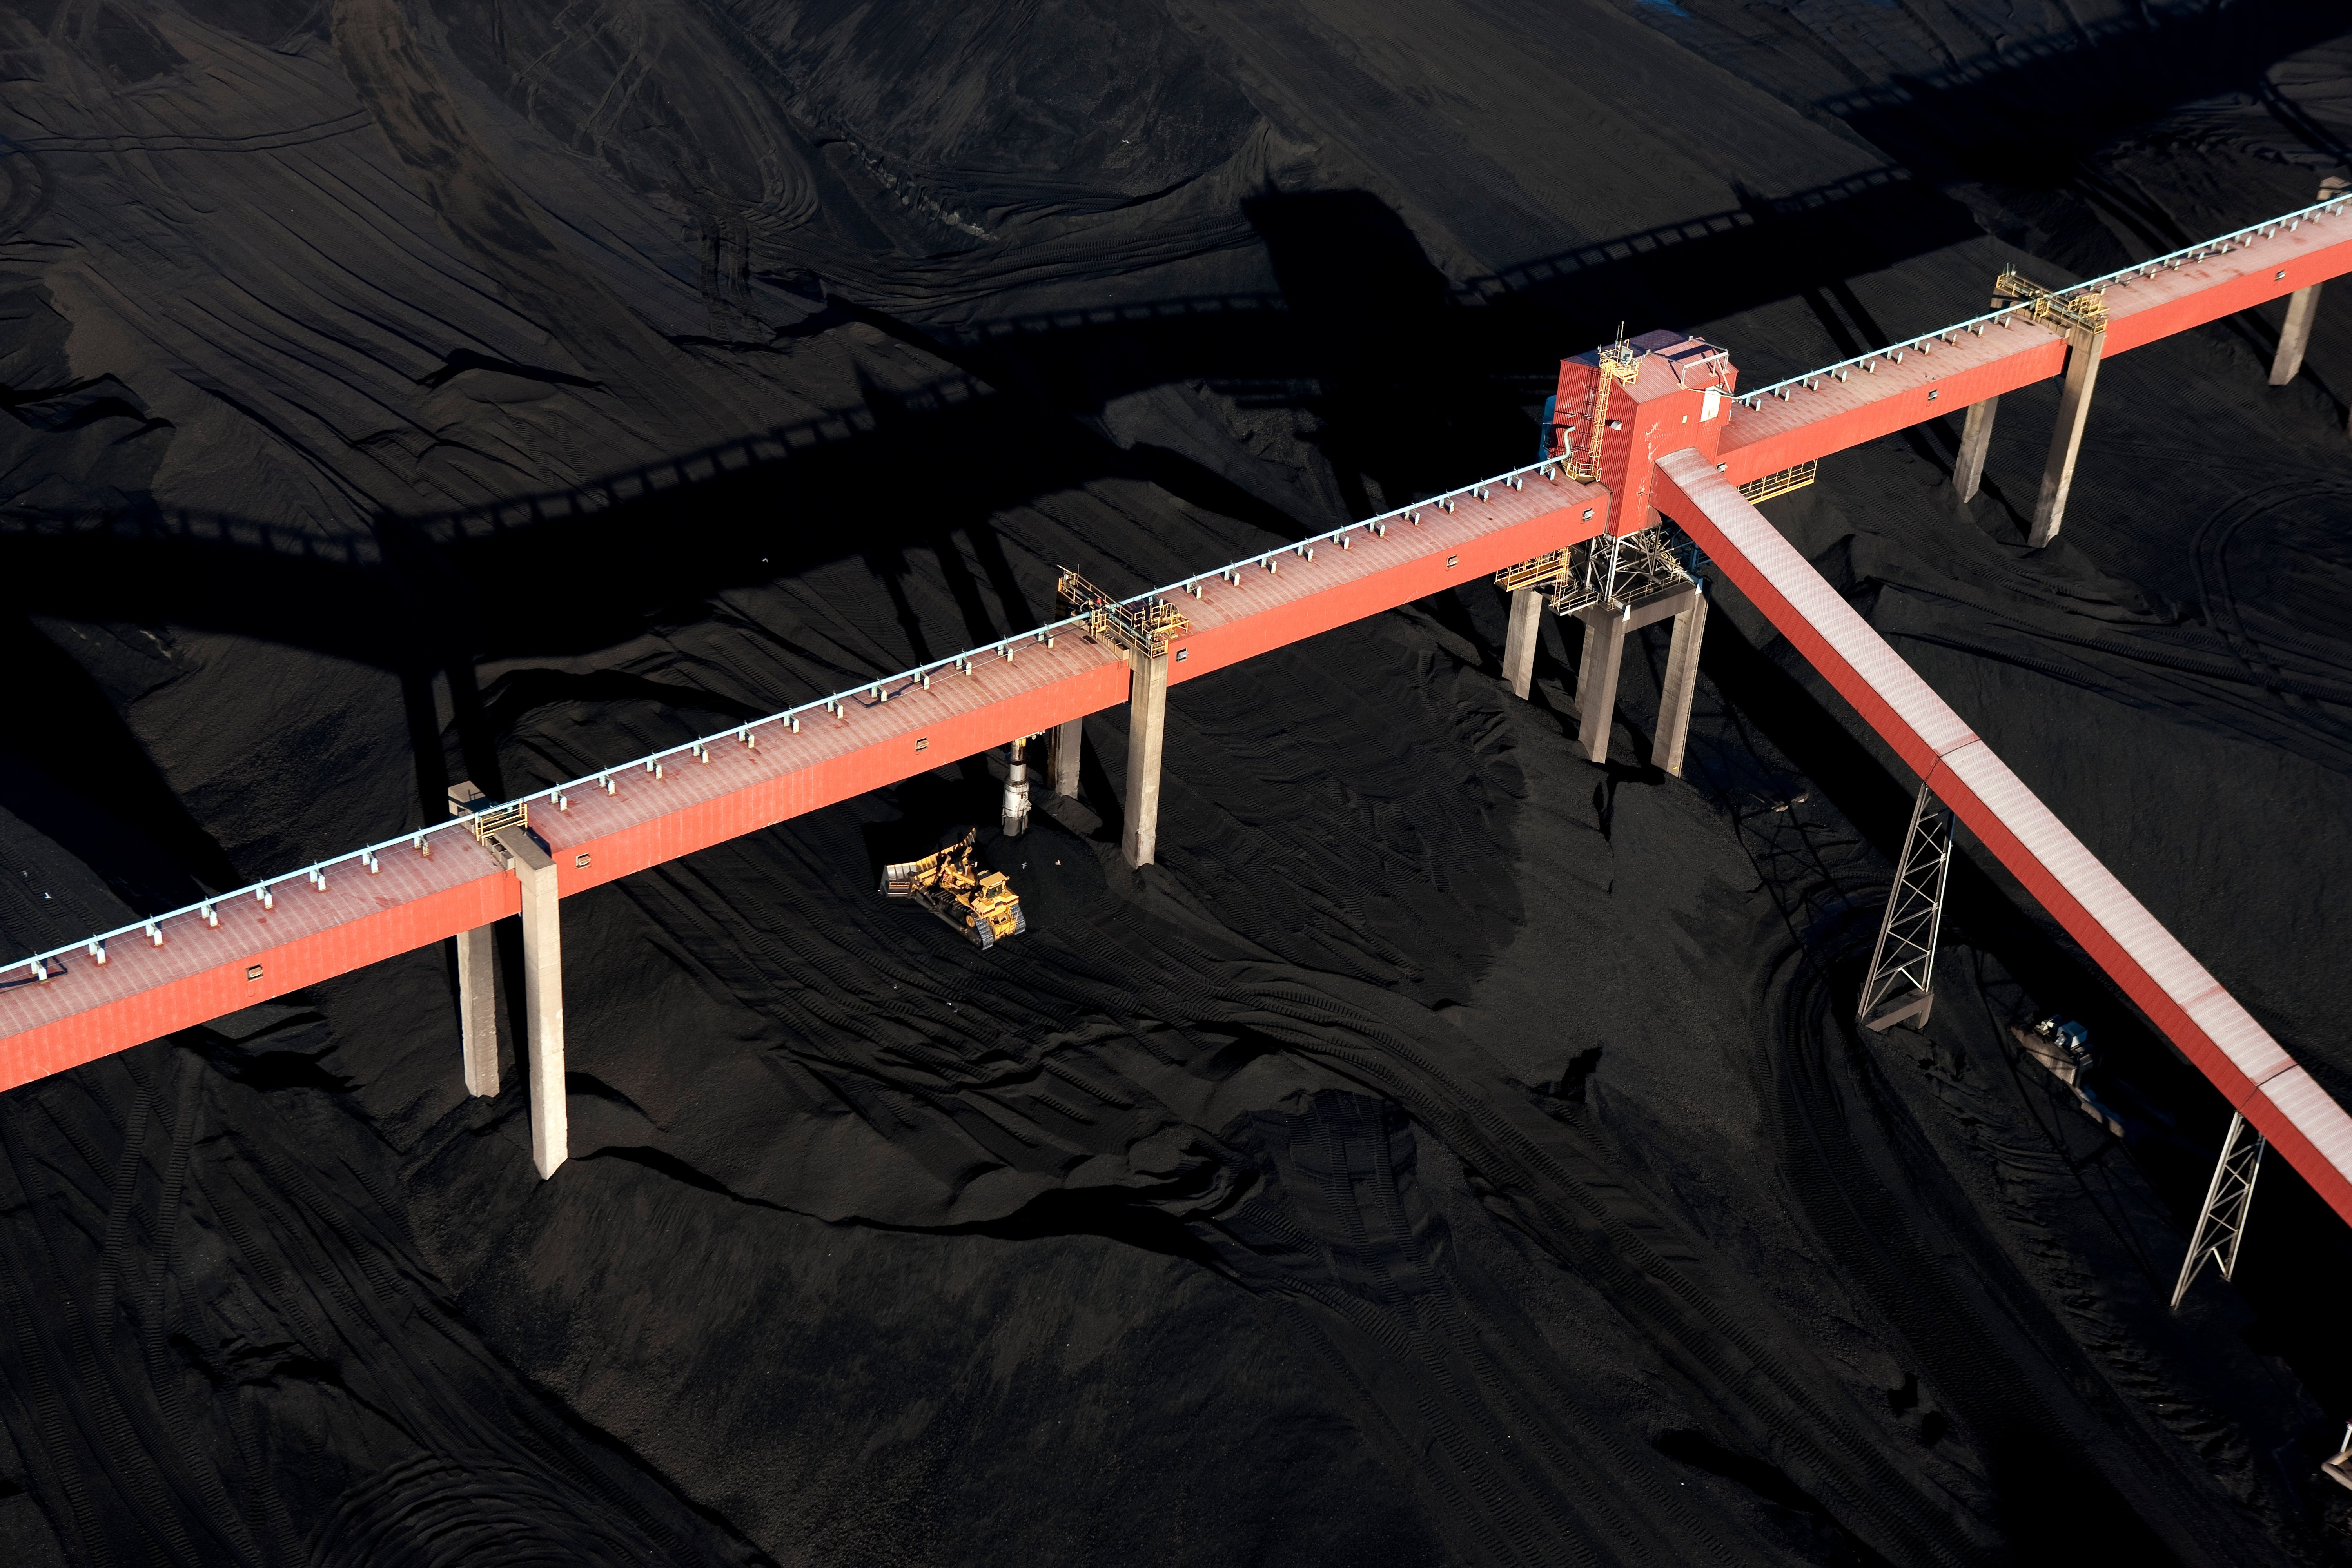 Coal's Decline Continues with 13 Plant Closures Announced in 2020